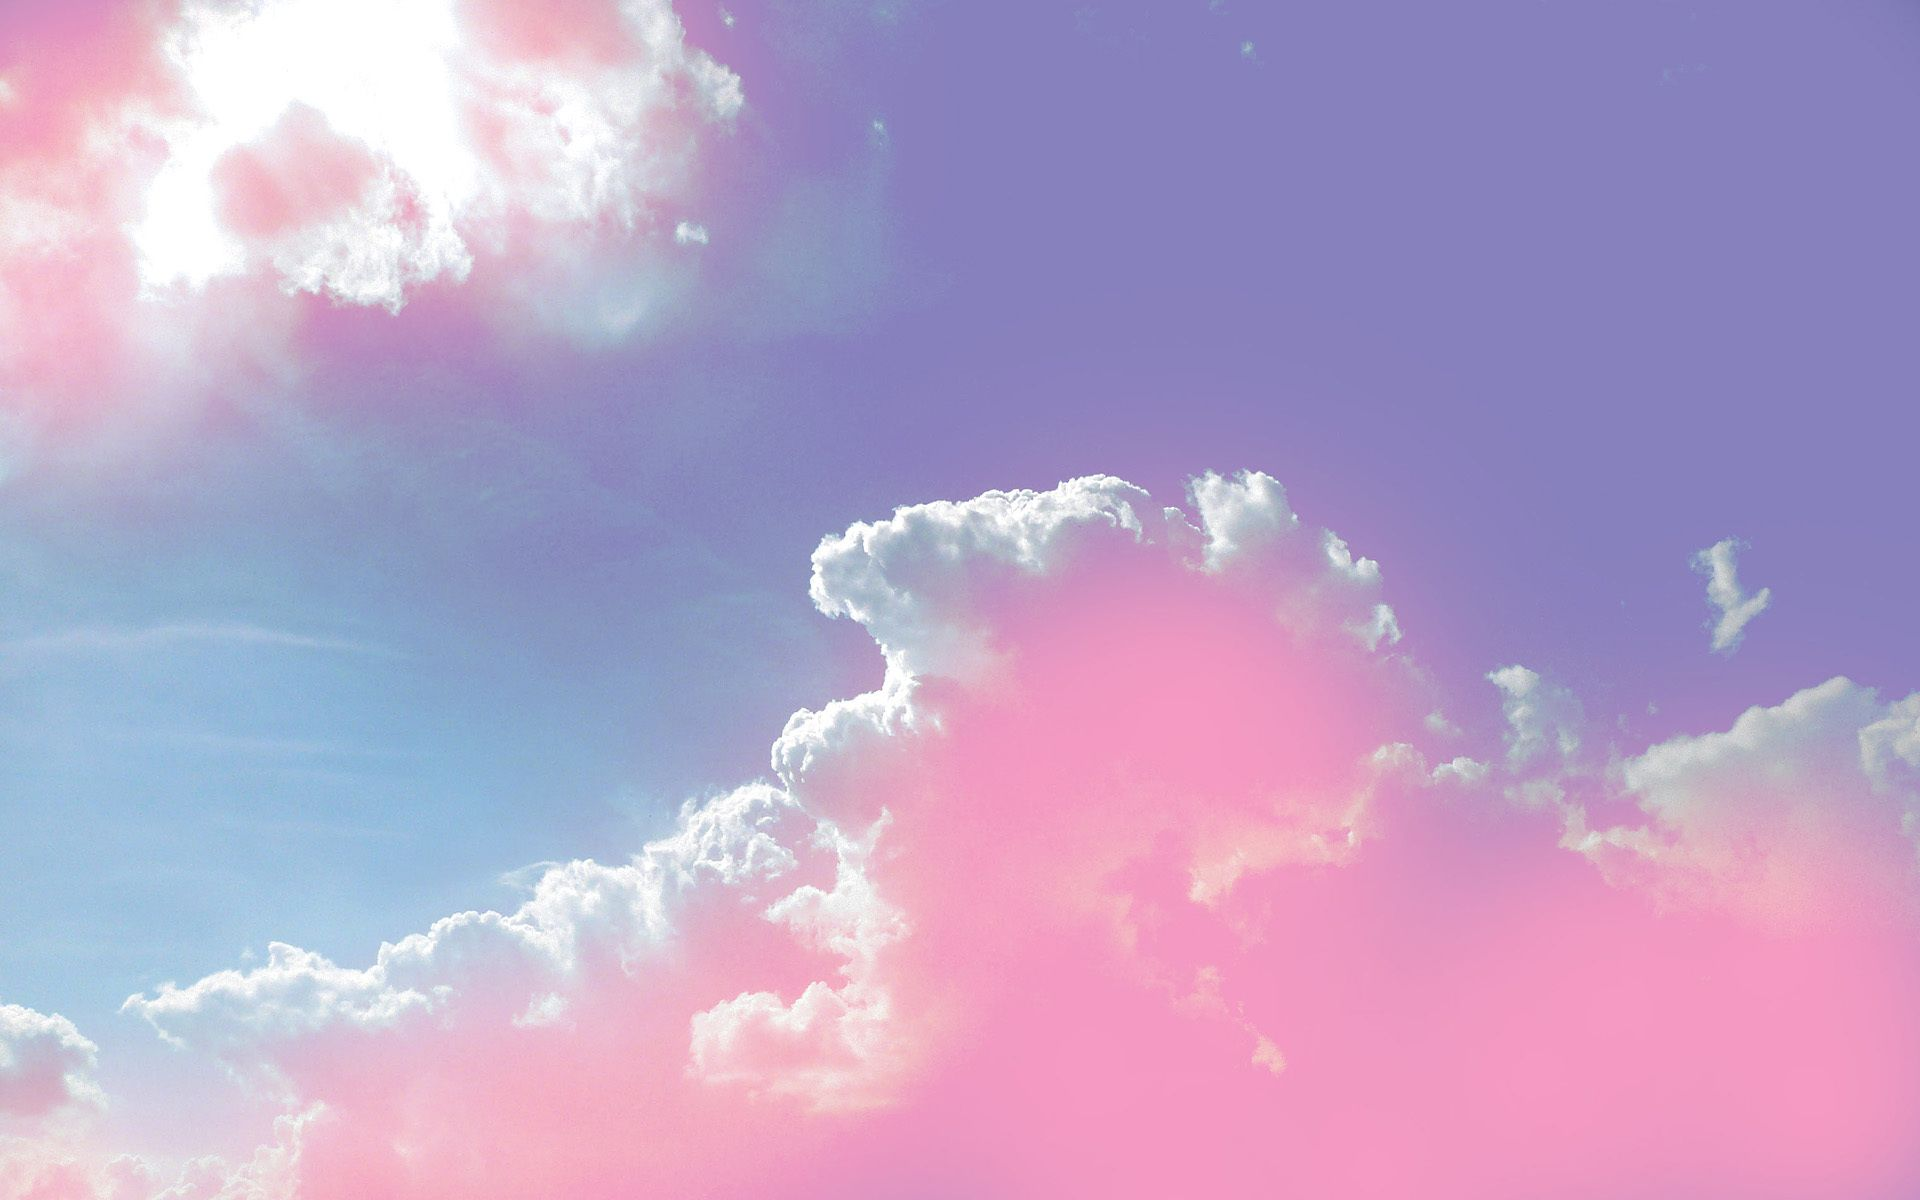 Desktop Sky Backgrounds | Wallpapers, Backgrounds, Images ...